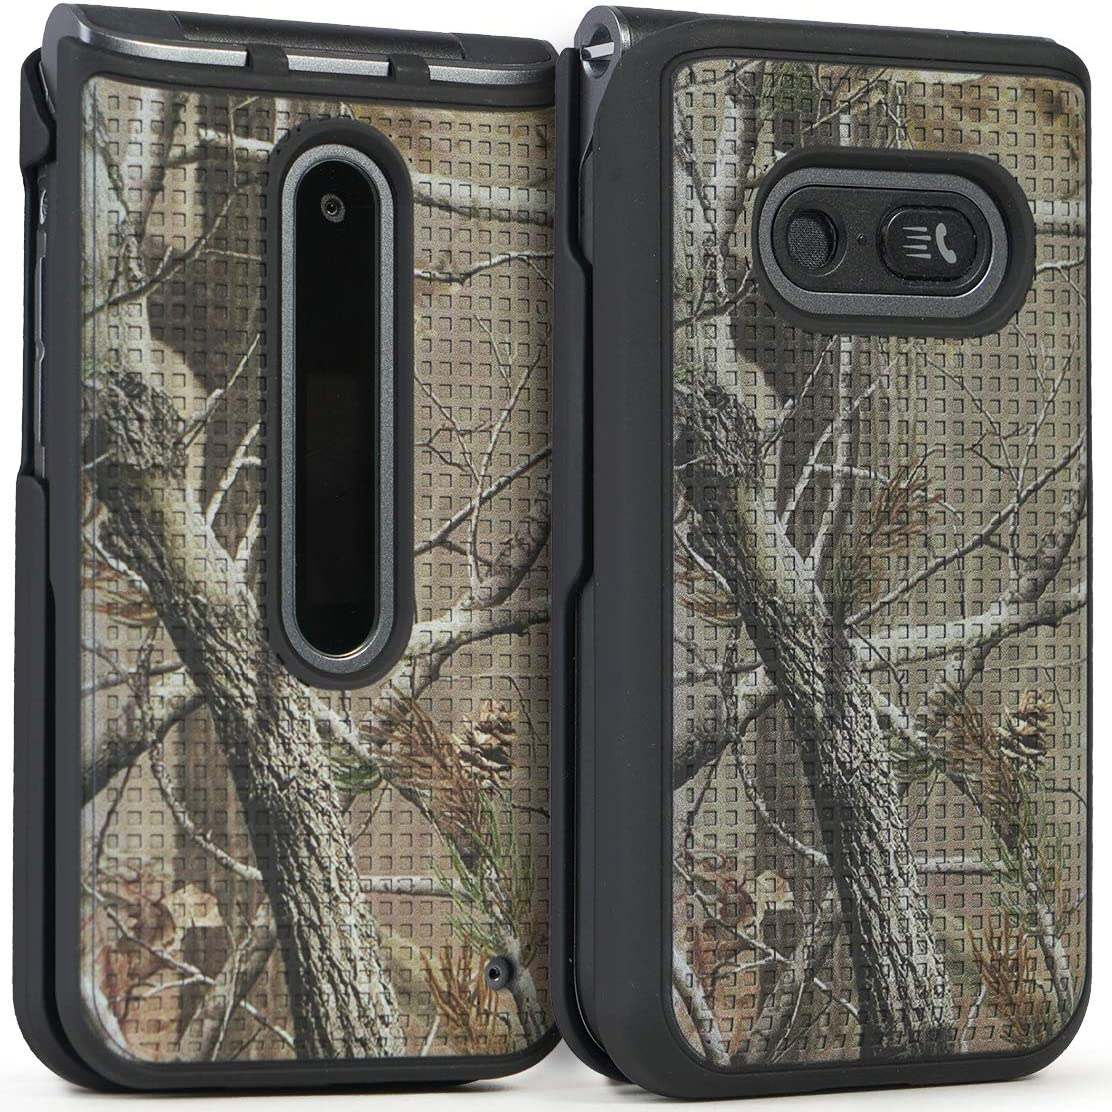 Case for LG Classic Flip, Nakedcellphone [Outdoor Camouflage] Tree Leaf Real Woods Camo Protective Hard Shell Cover for LG Classic Flip Phone L125DL